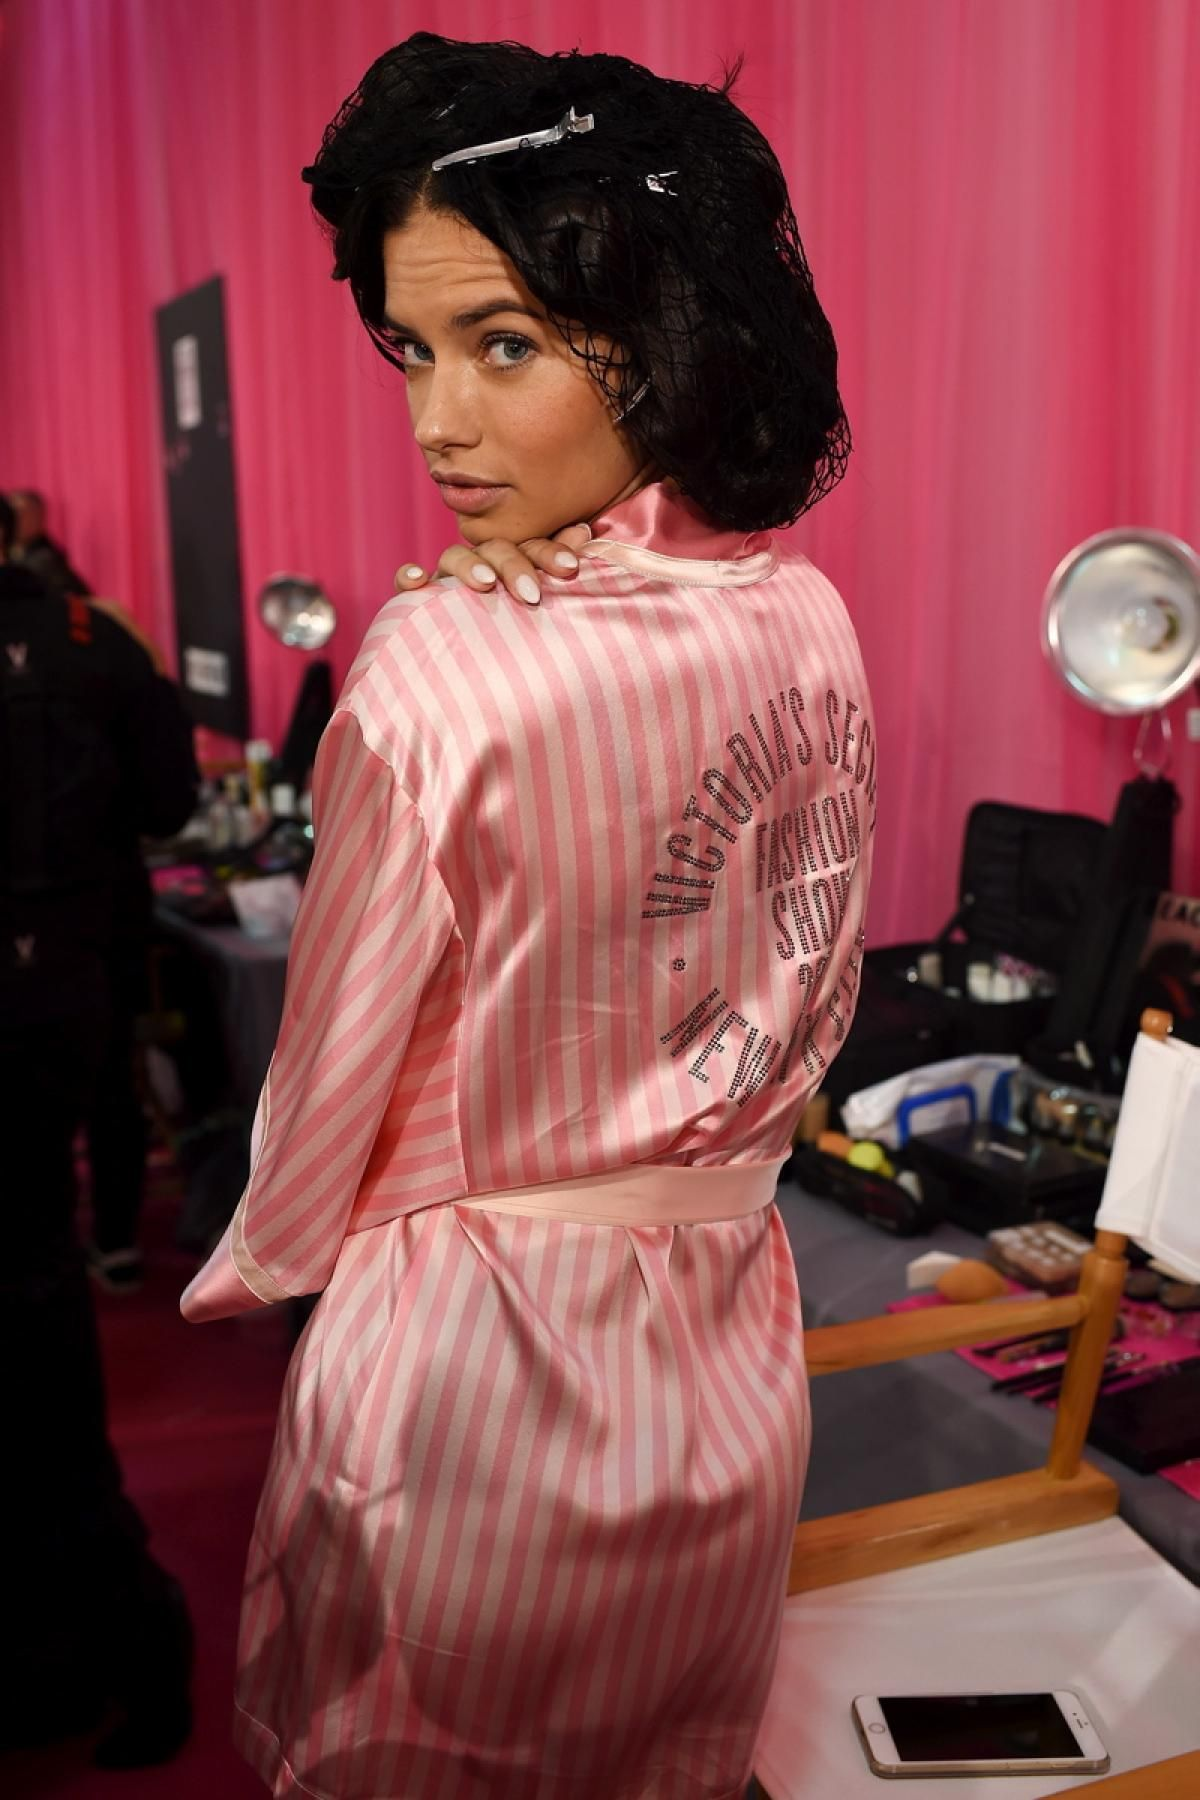 Adriana Lima - Photos - Backstage at the 2015 Victoria's ...